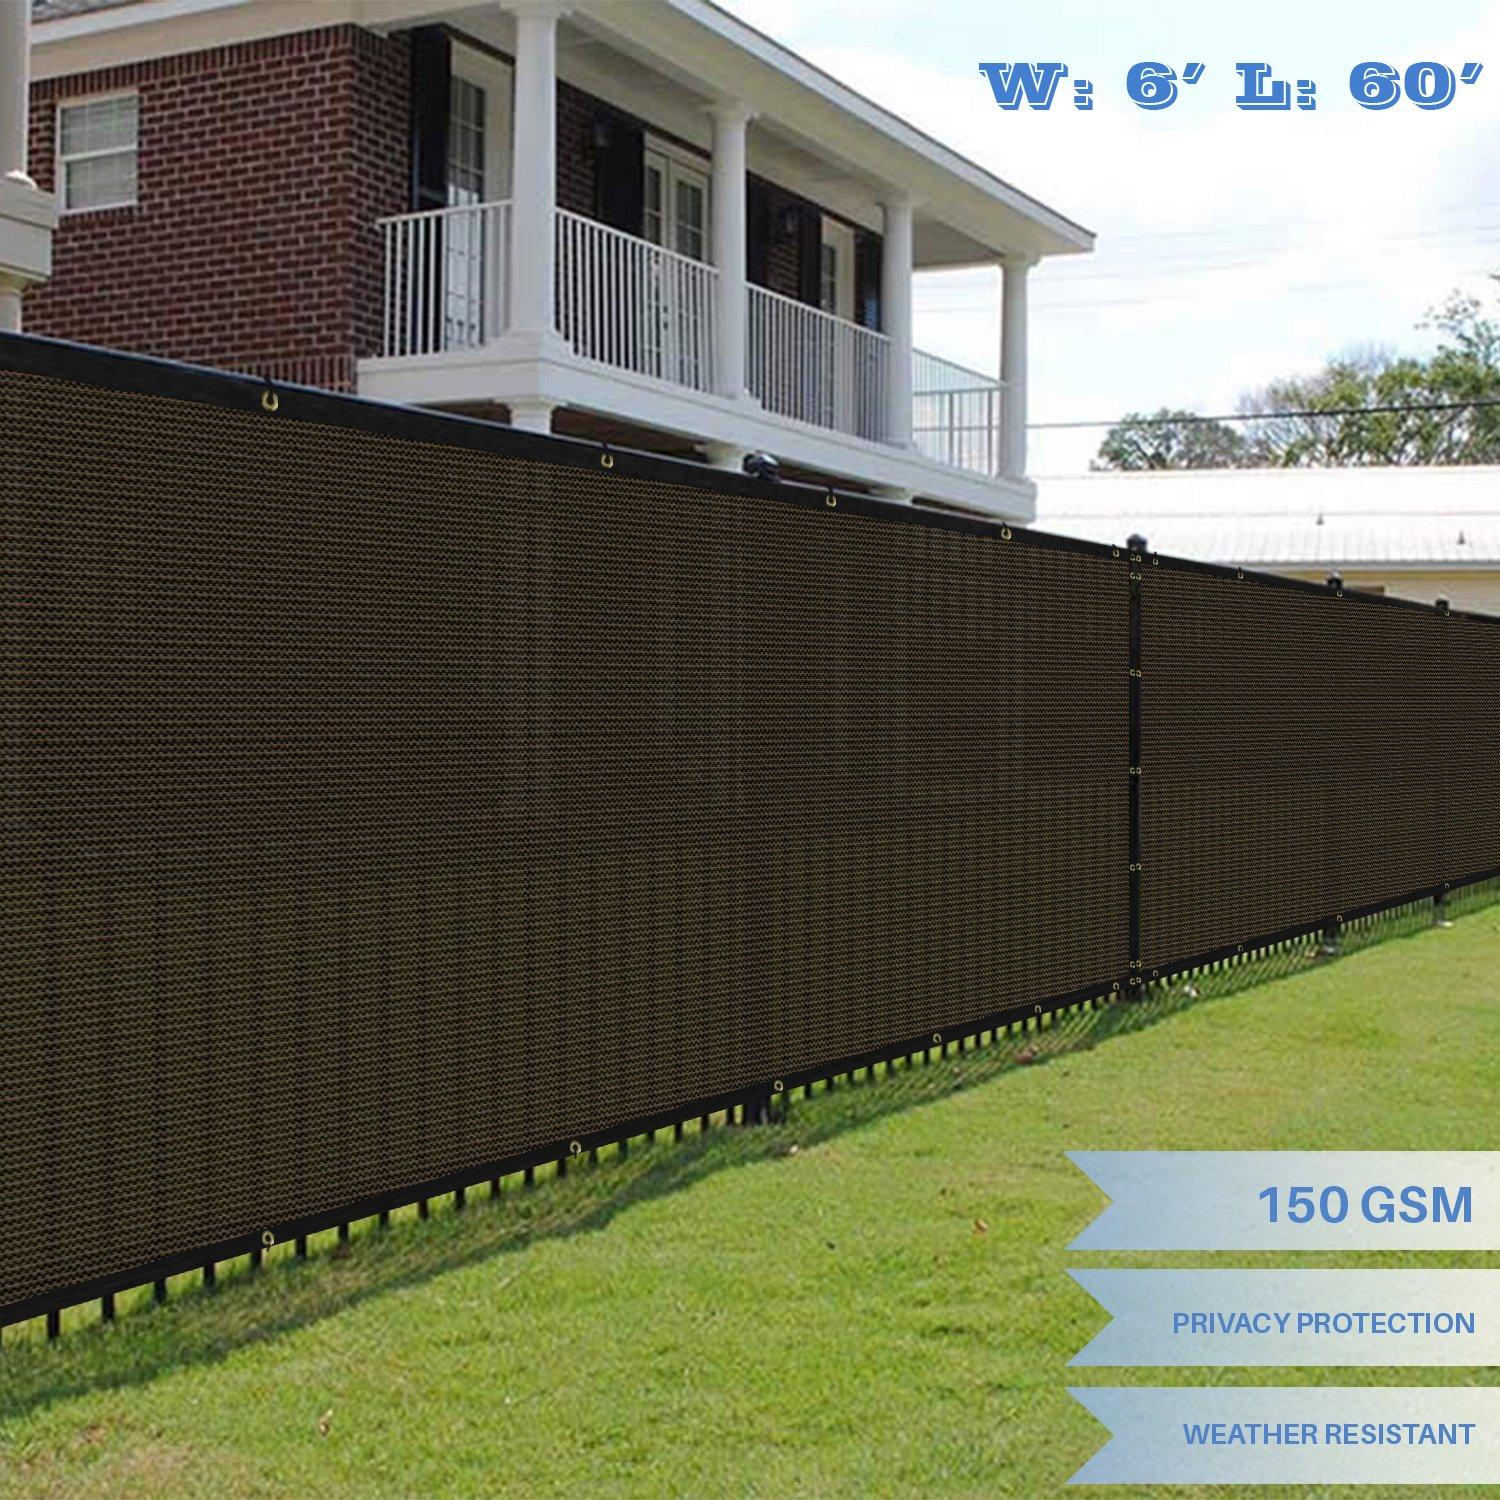 E&K Sunrise 6' x 60' Brown Fence Privacy Screen, Commercial Outdoor Backyard Shade Windscreen Mesh Fabric 3 Years Warranty (Customized Set of 1